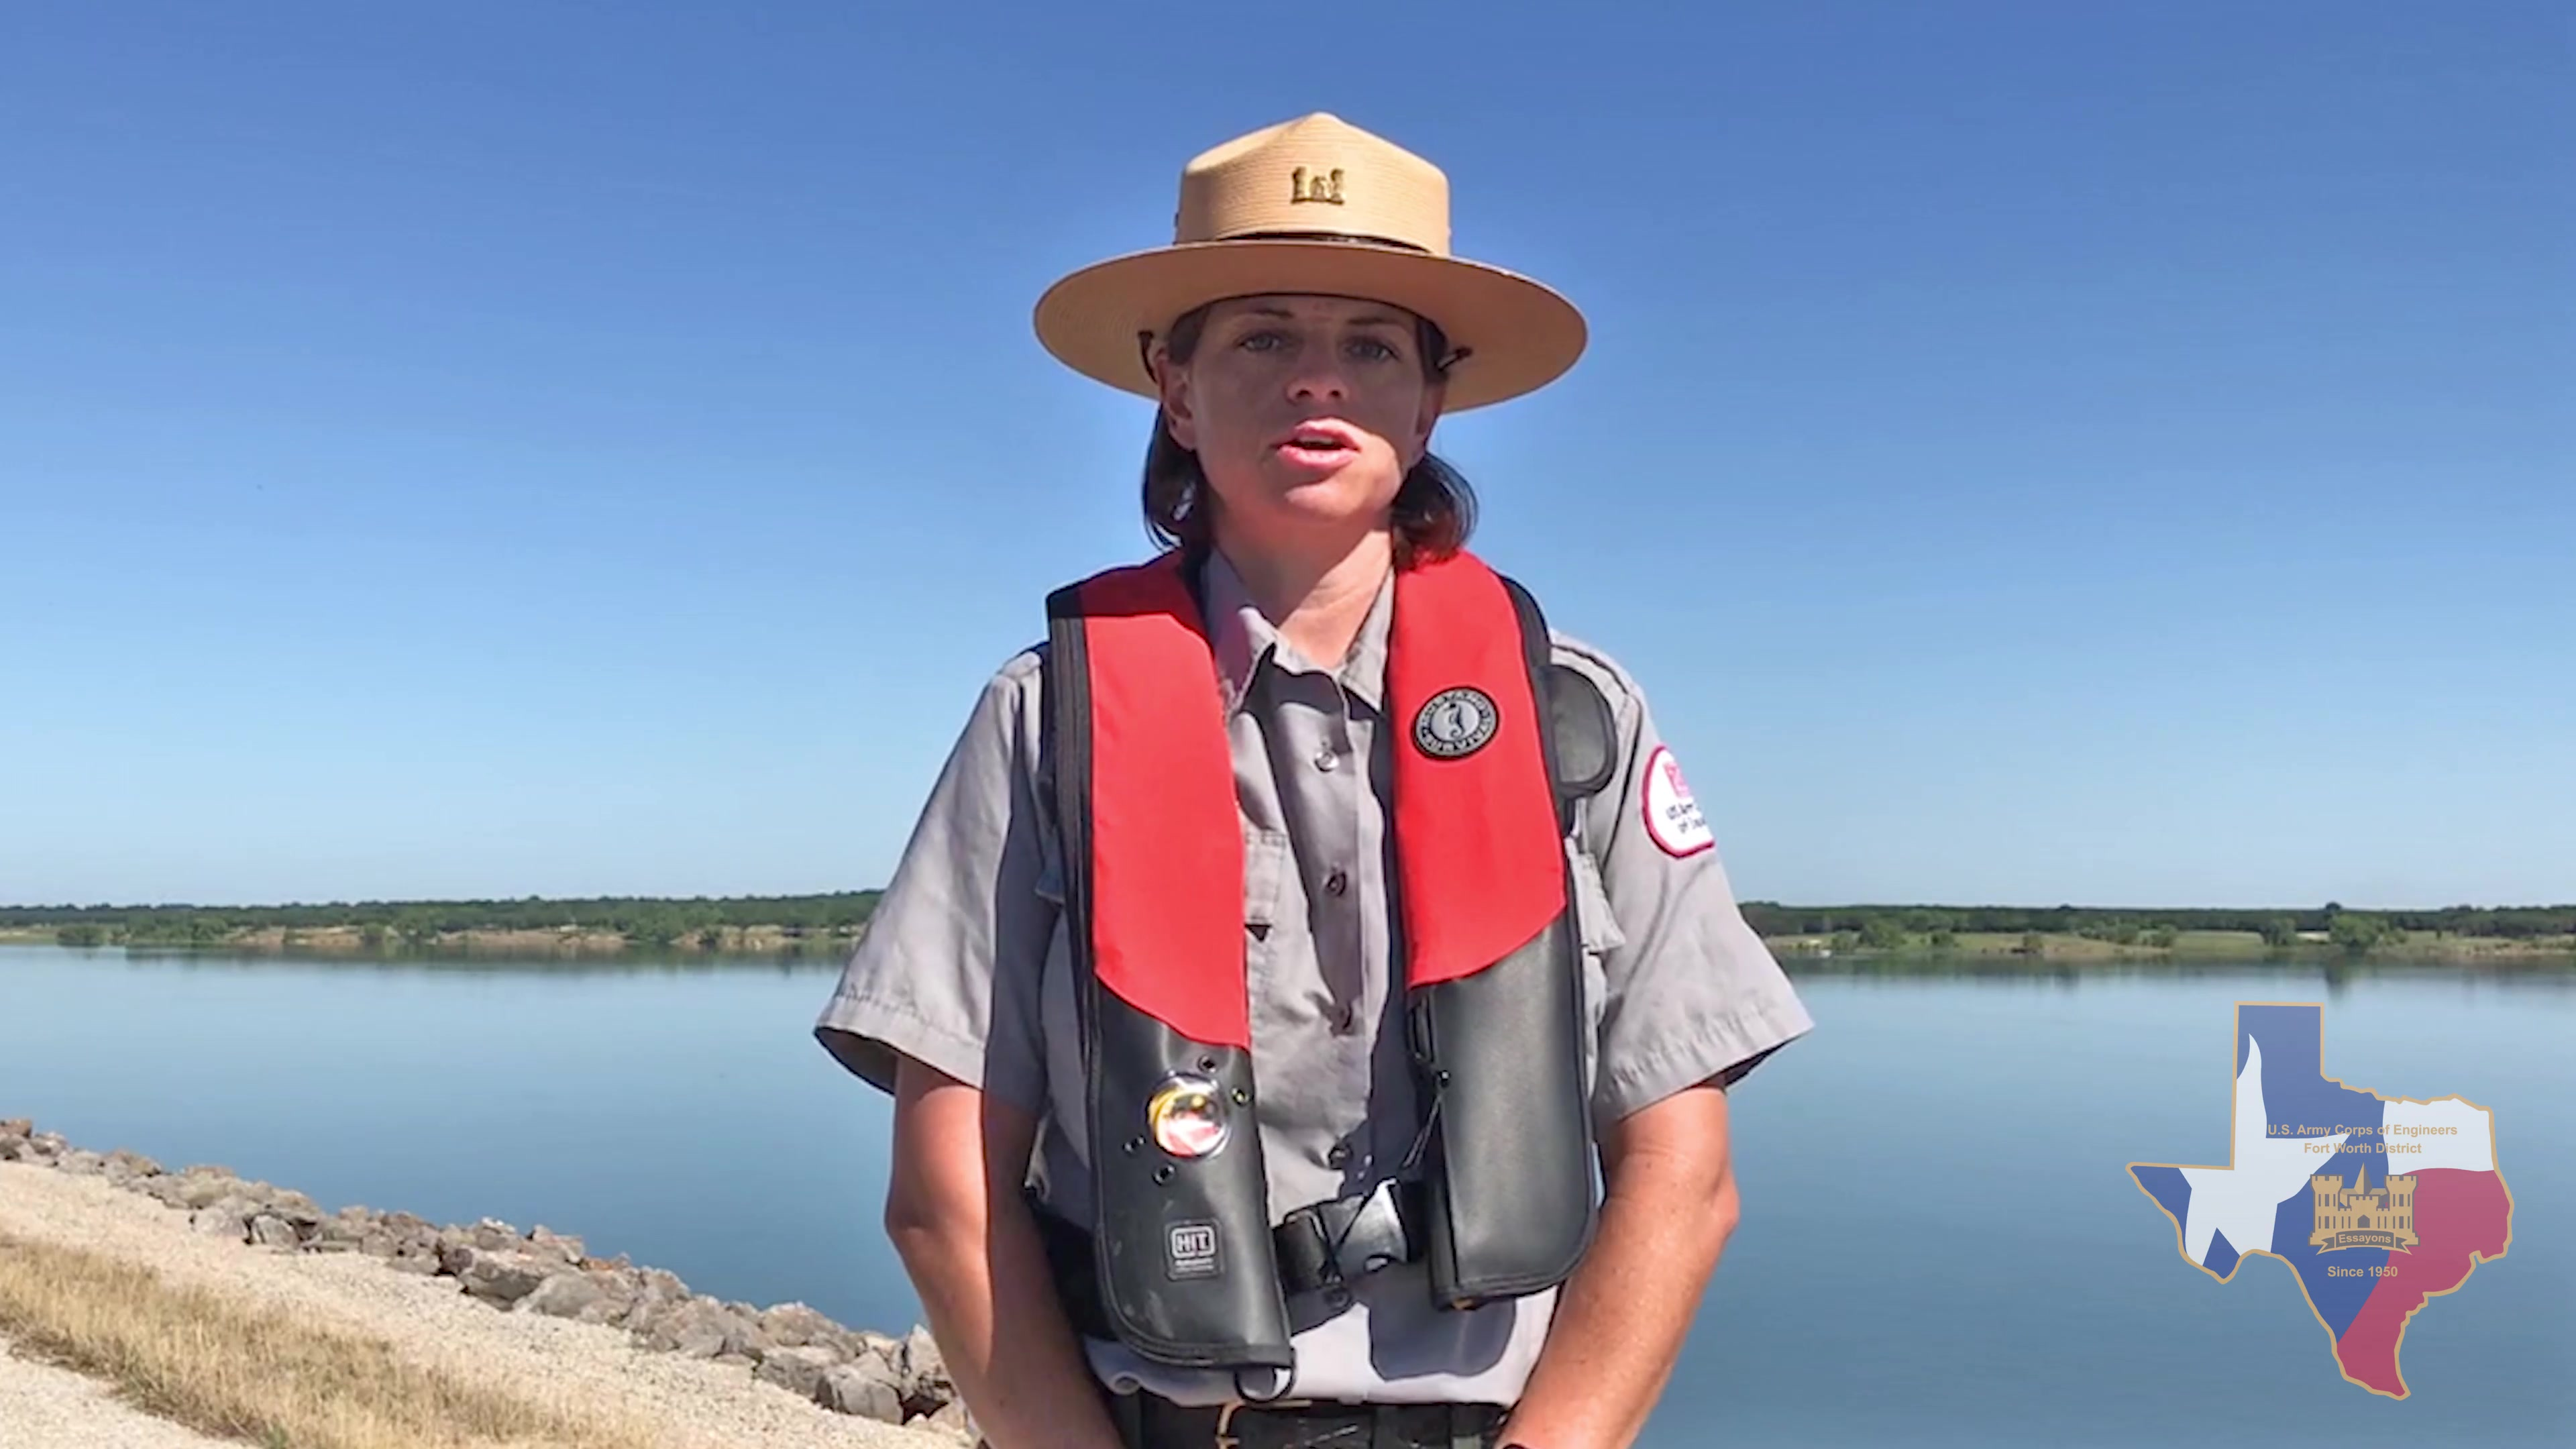 In this #watersafety video, Park Ranger Stephanie Jones from Proctor Lake teaches you about the five stages of drowning.